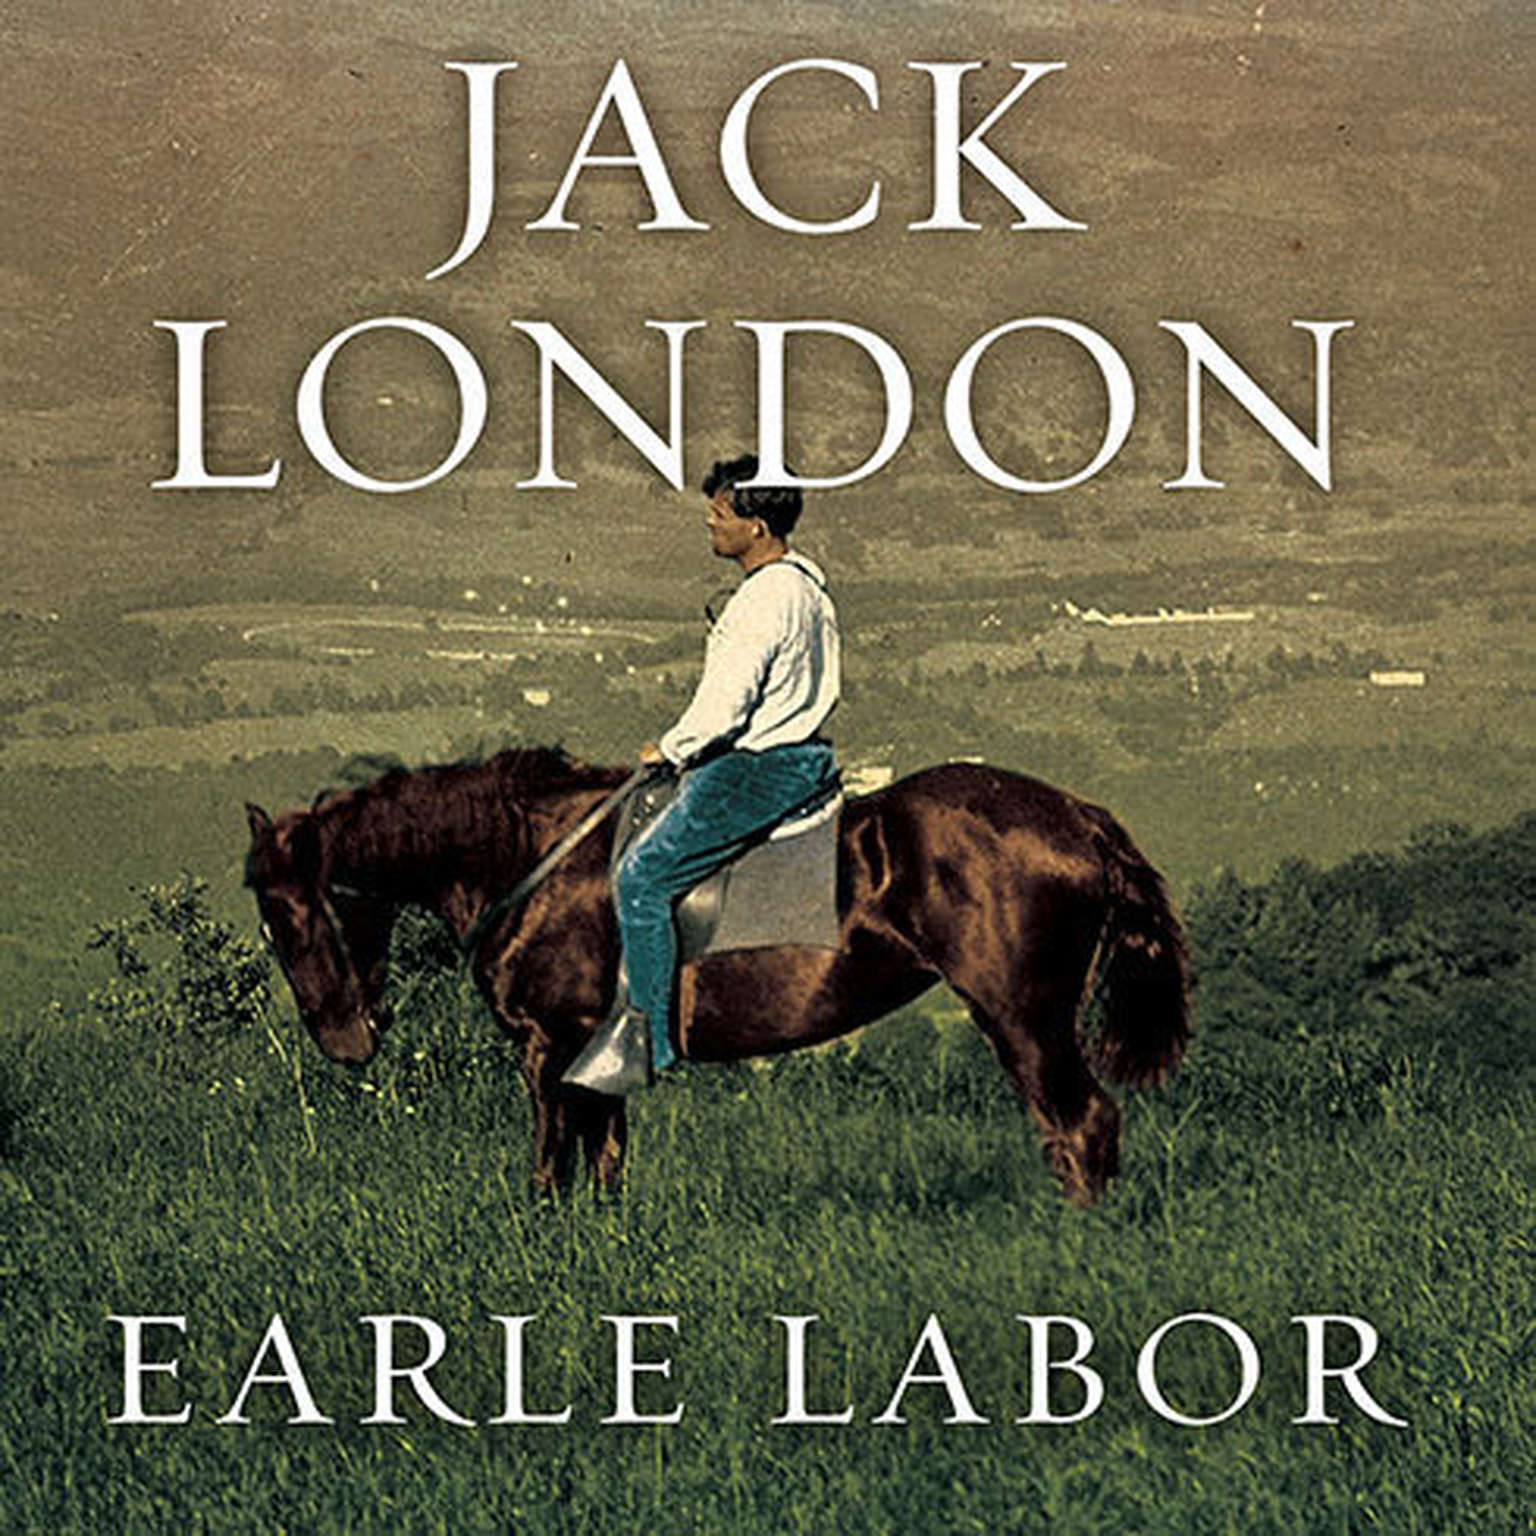 Printable Jack London: An American Life Audiobook Cover Art